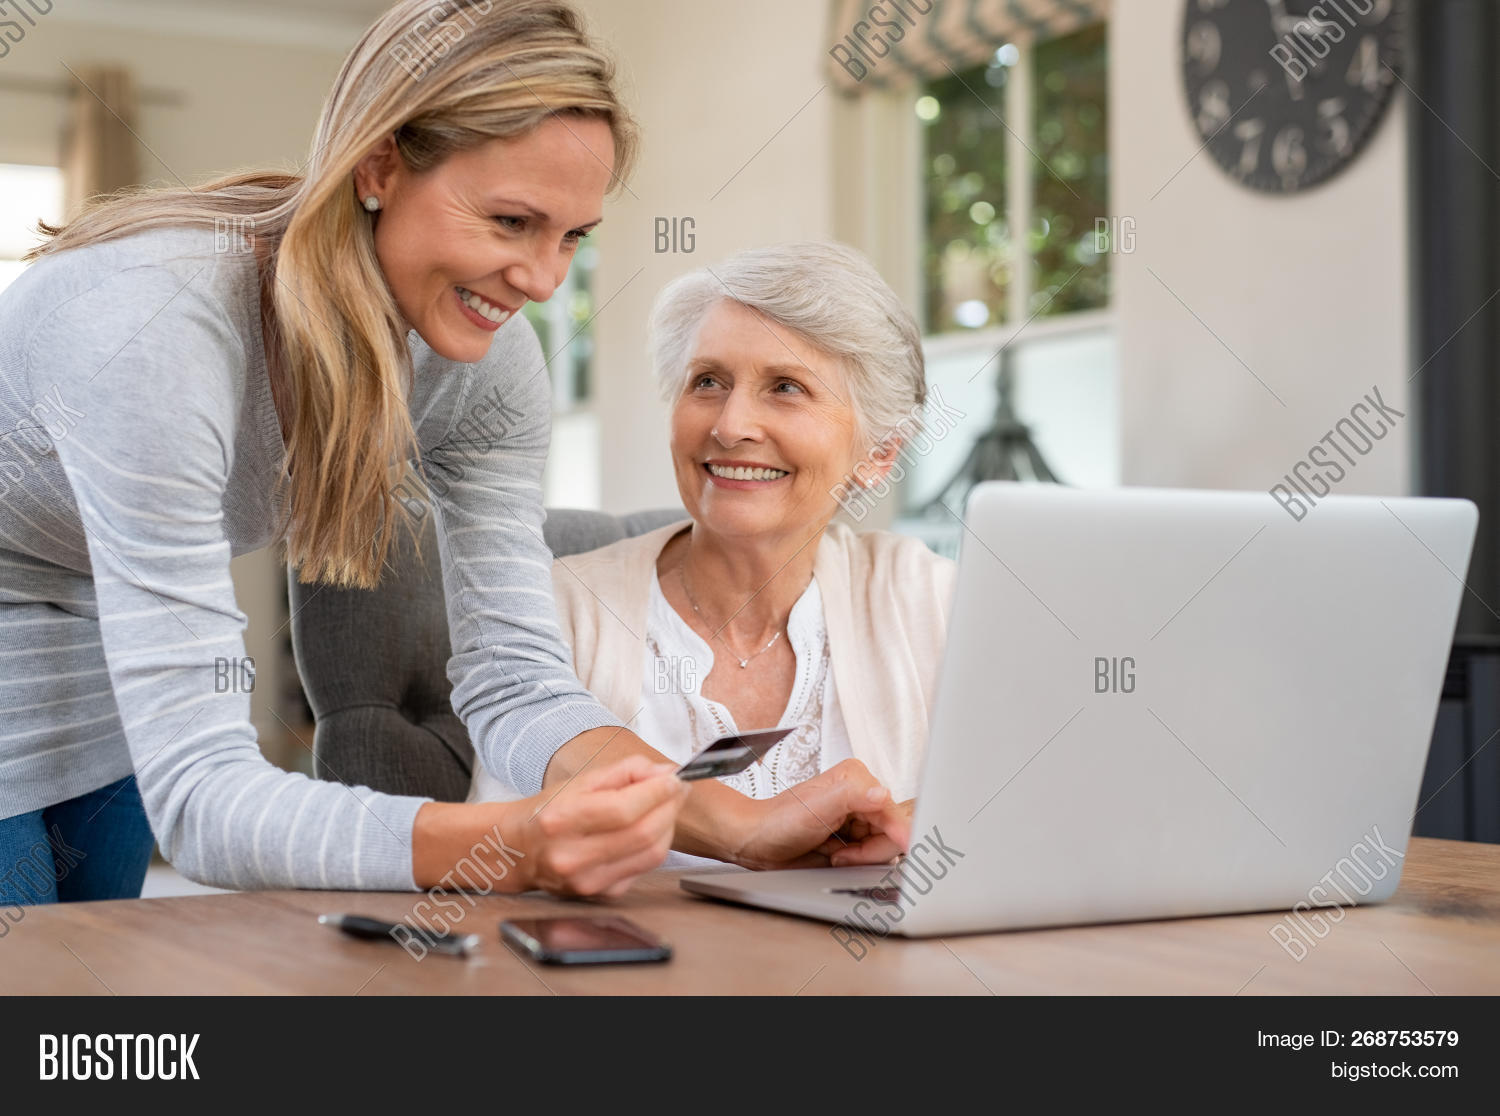 aging process,assistance,banking,bill,bills,buy,card,computer,connection,credit,credit card,customer,daughter,ecommerce,elderly care,elderly woman,happy,helping hand,holding,home,internet,internet banking,laptop,mature,mother,mother and daughter,old,old age,old woman,online,online shop,online shopping,pay,paying,paying with credit card,payment,people,purchase,retired,retired woman,retirement,senior,shop,shopping online,technology,using computer,using laptop,web,wireless,woman